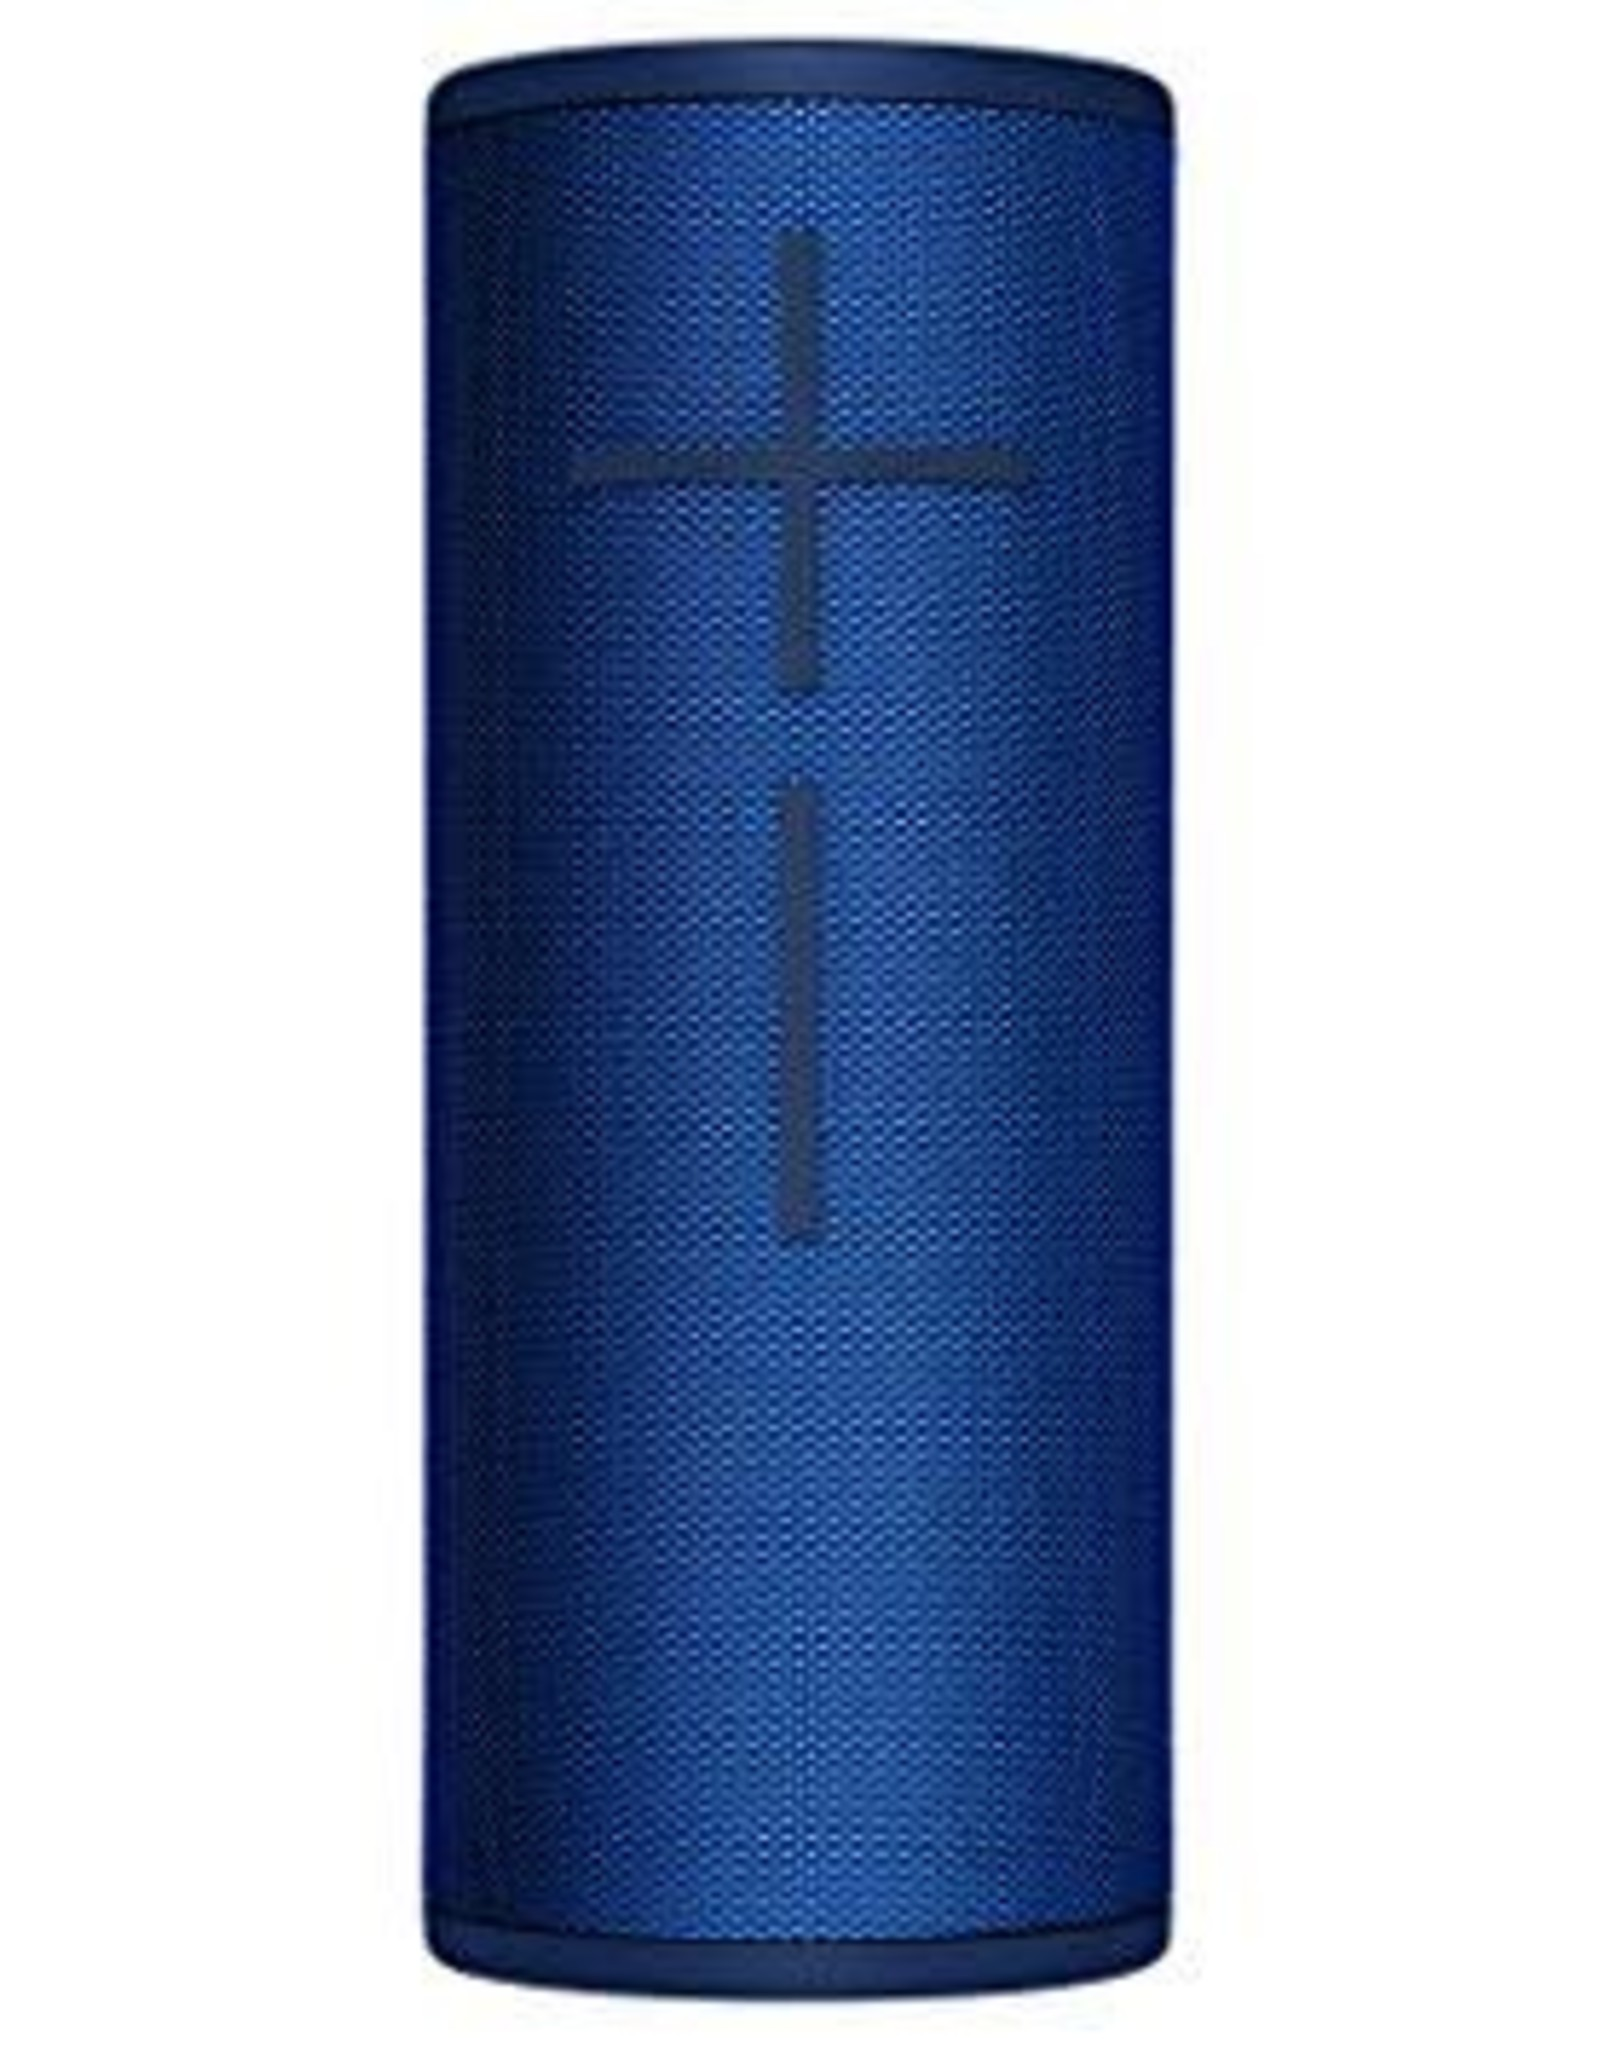 Ultimate Ears | Boom 3 Wireless Bluetooth Speaker-Lagoon Blue | 984001350